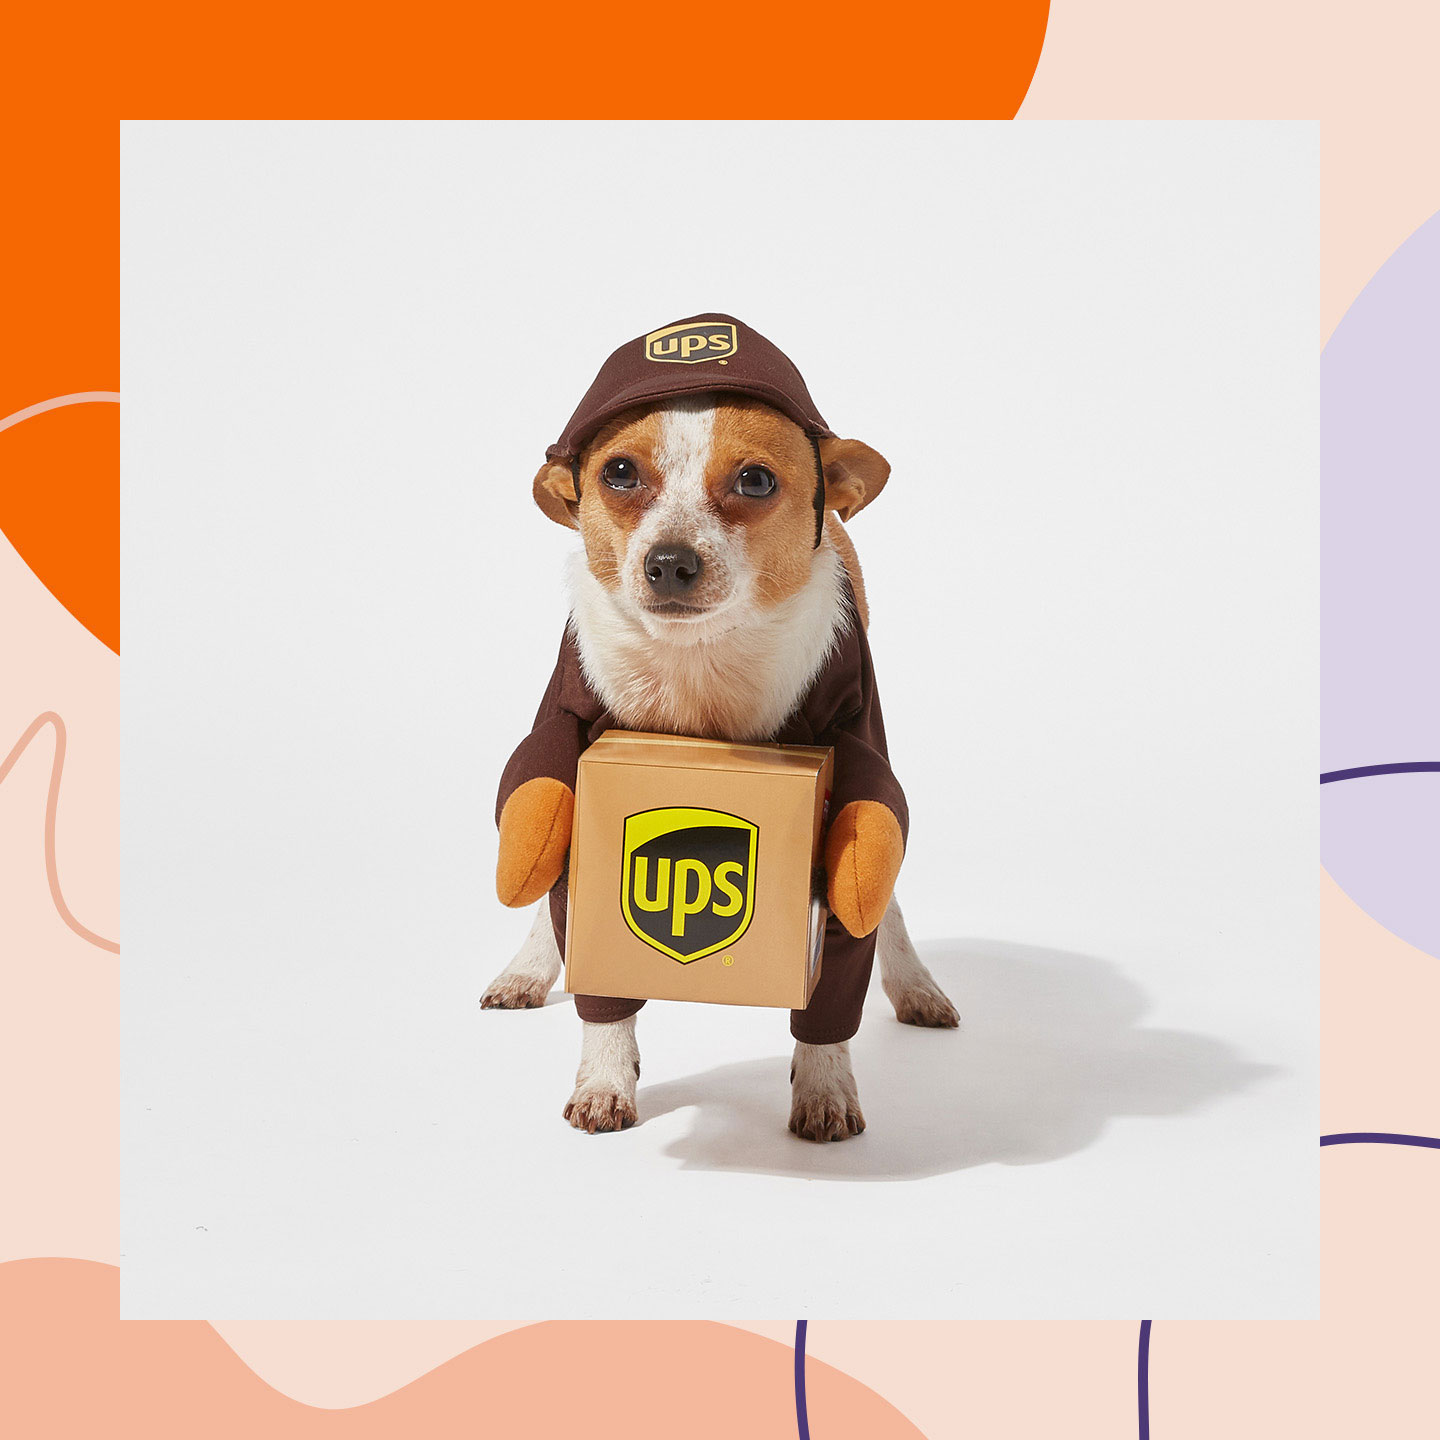 Best Dog Halloween Costumes 2020 Buying Guide: The Best Dog Halloween Costumes for 2020